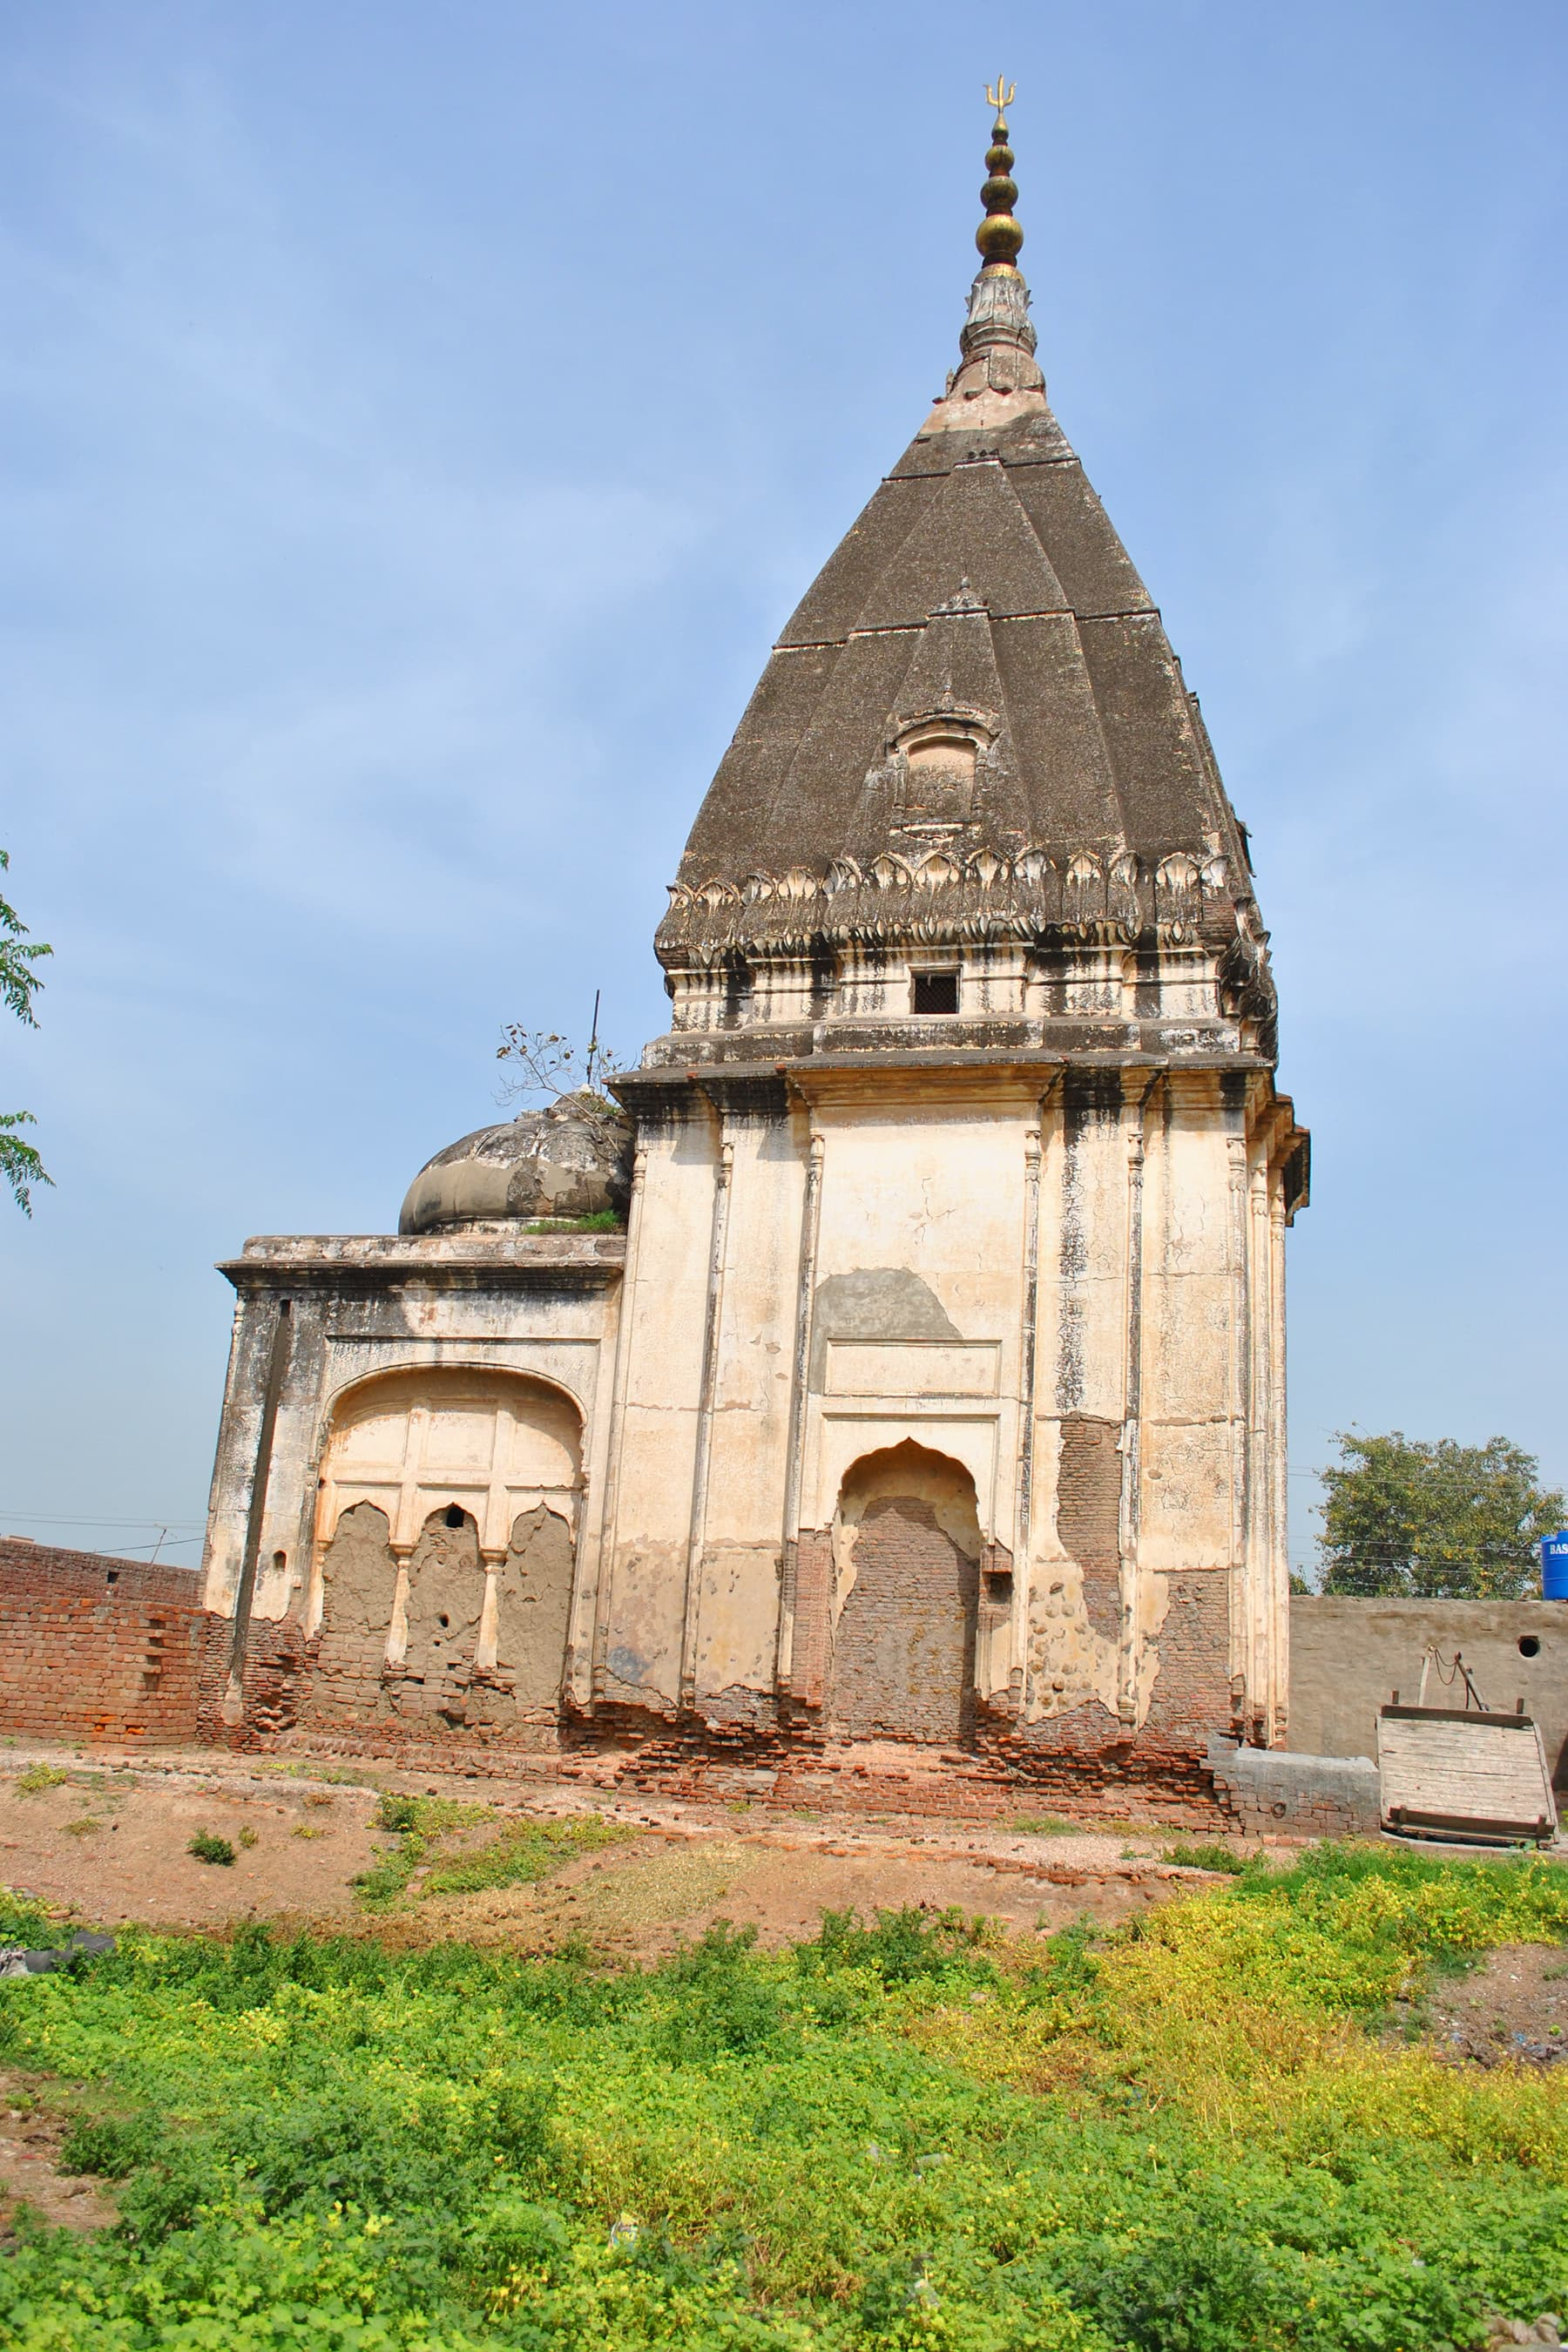 Shiva Temple — there are at least three such main temples, although we can't trace the complete history of these temples, the structure does not seem very old.